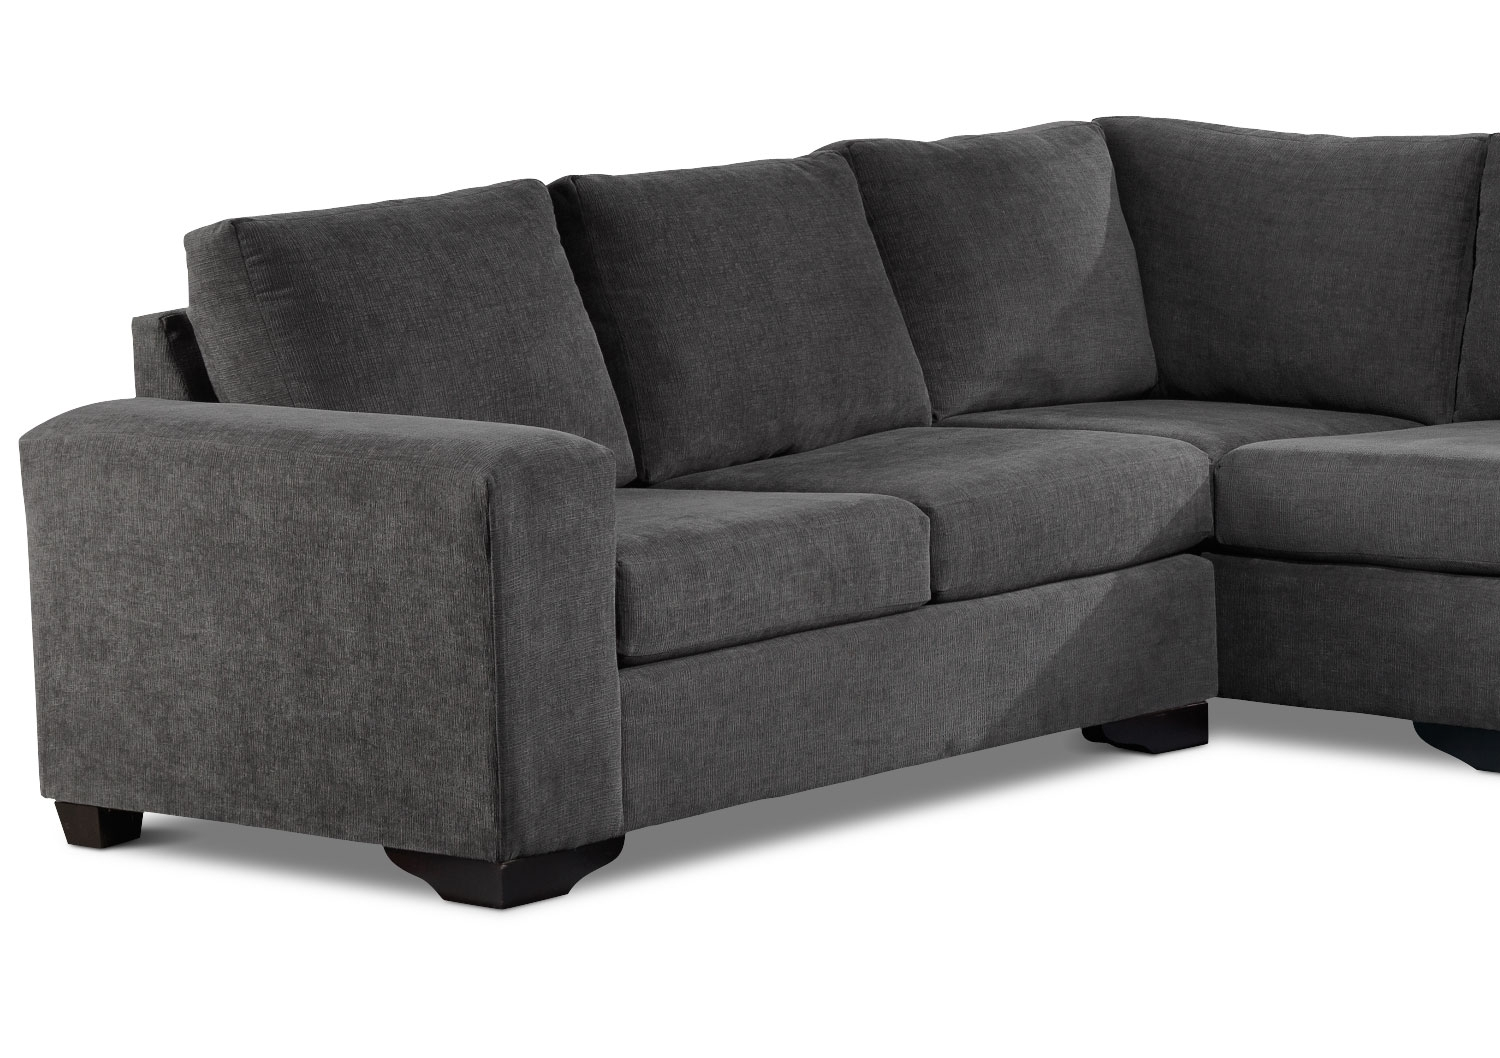 Danielle 3-Piece Sectional With Right-Facing Corner Wedge - Grey pertaining to Leons Sectional Sofas (Image 3 of 10)